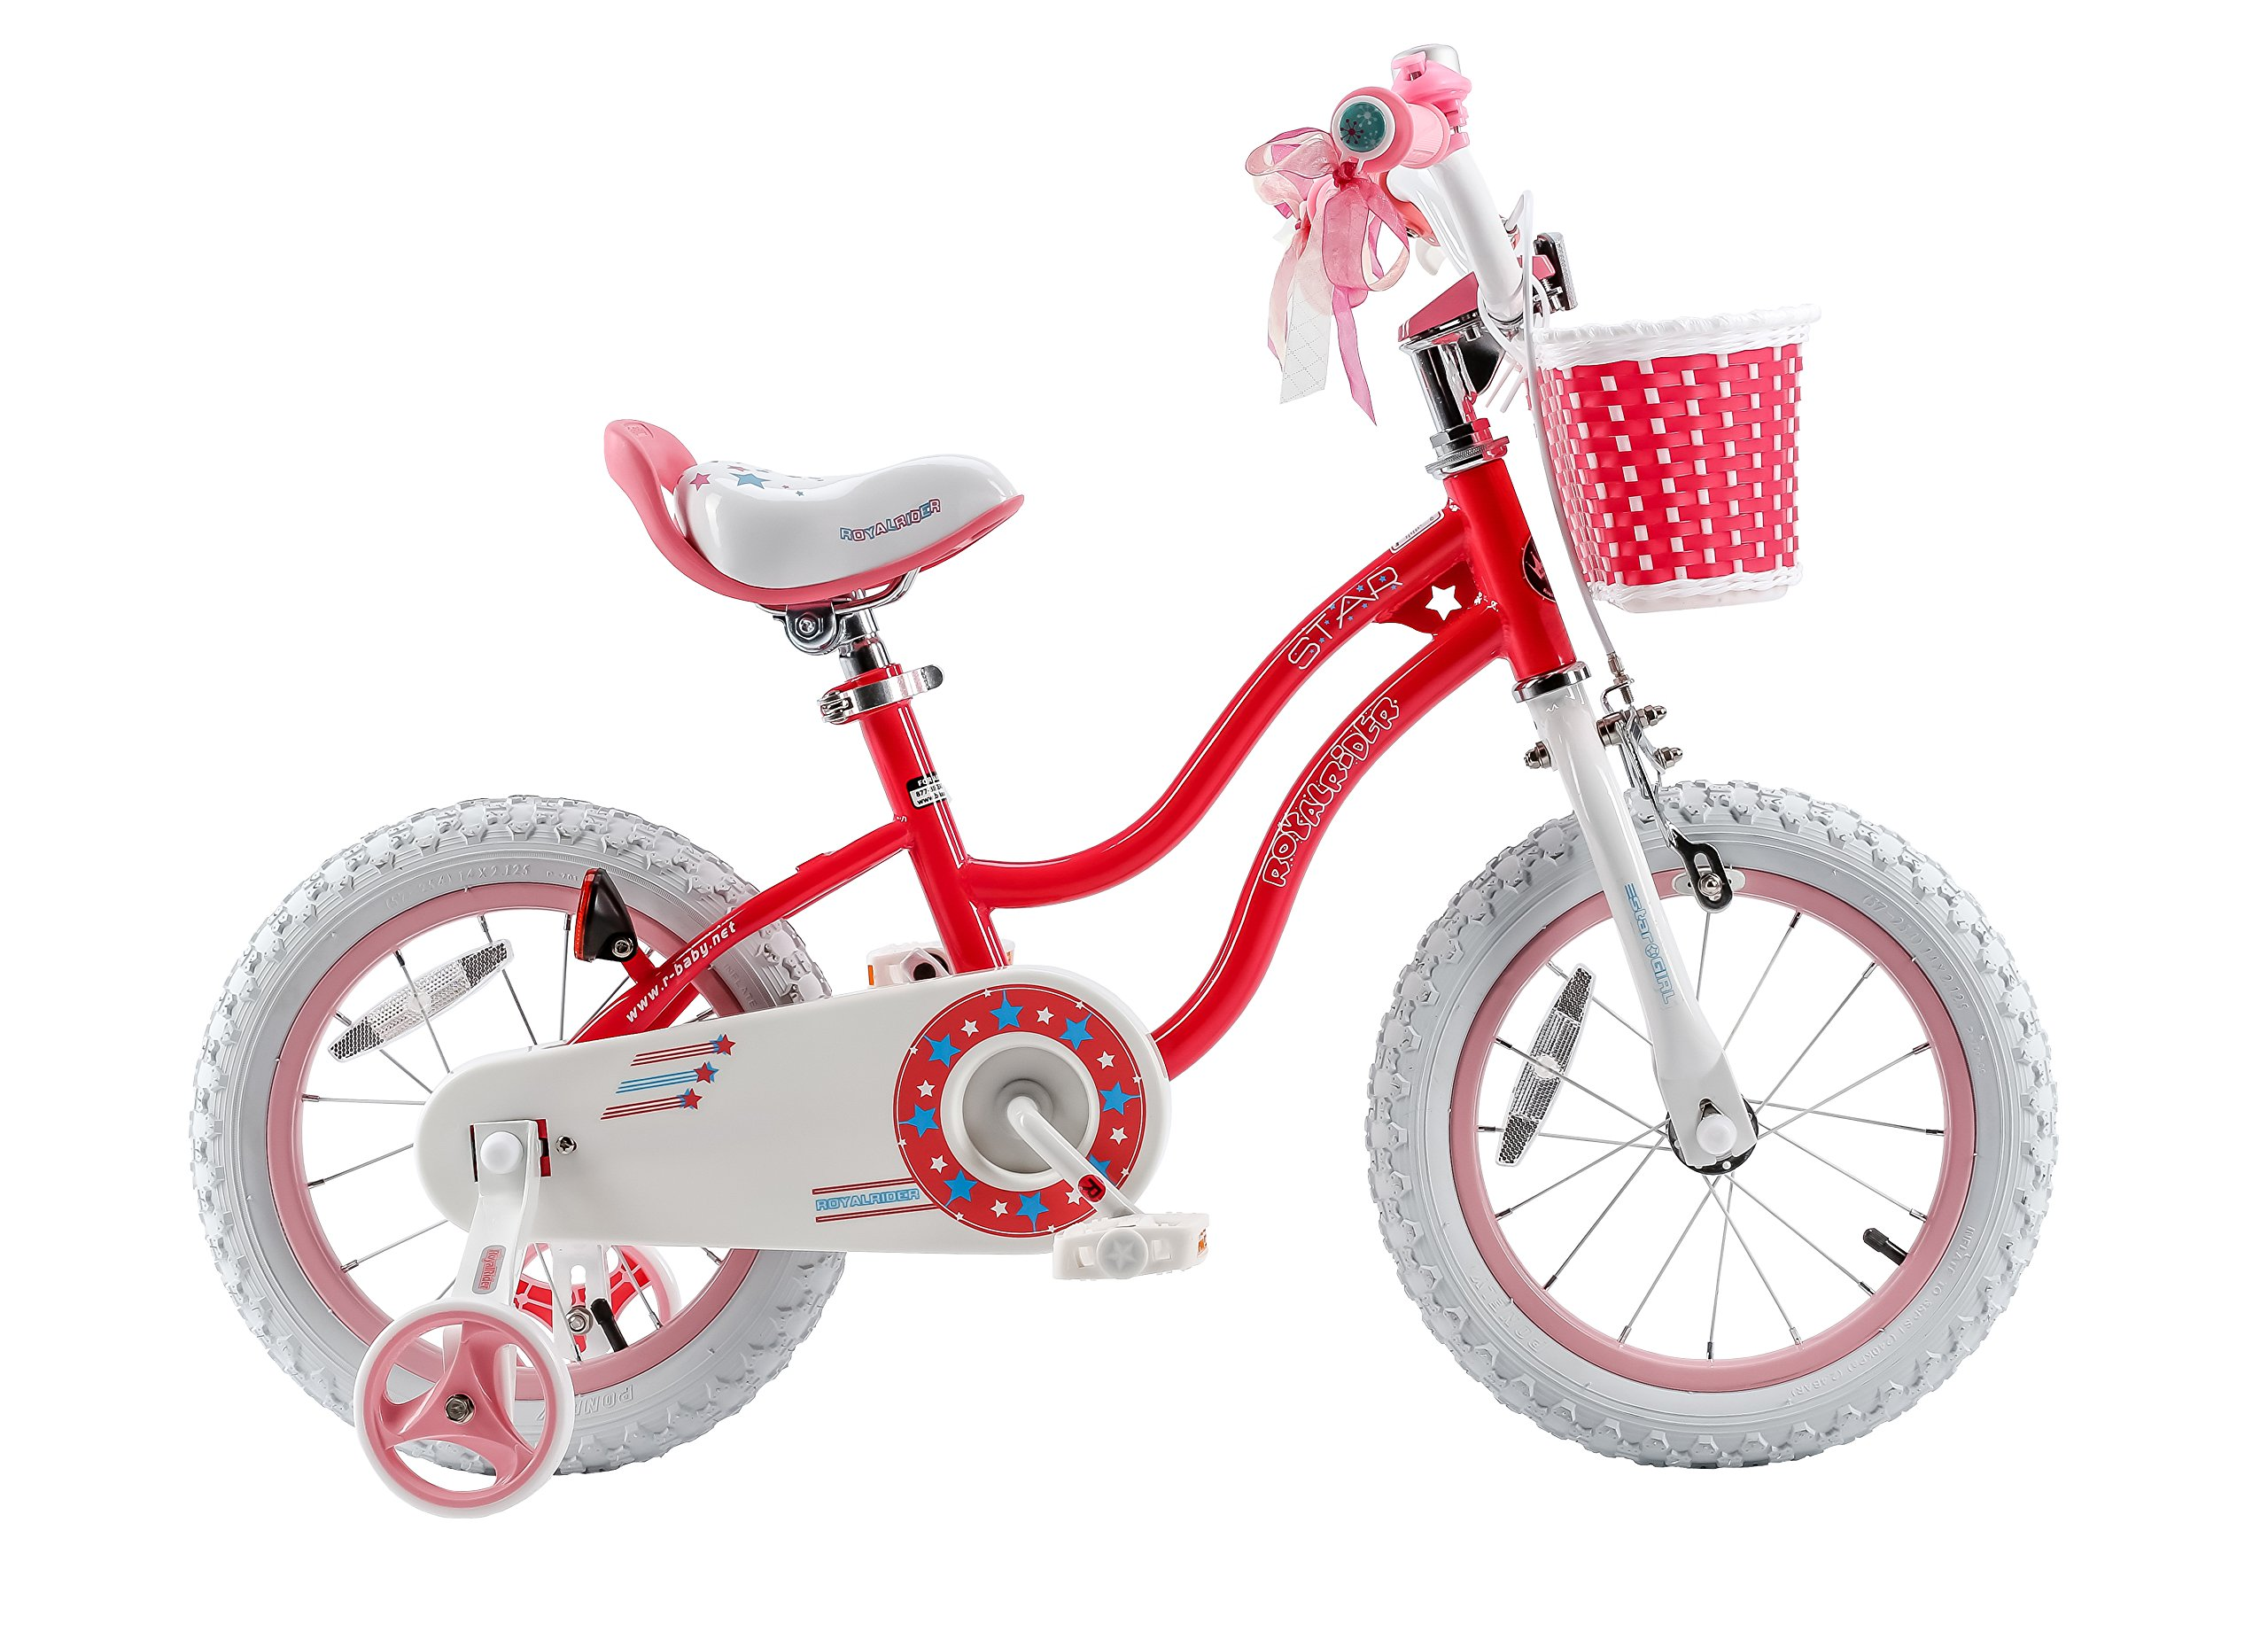 Royalbaby Stargirl Girl's Bike with Training Wheels and Basket, Perfect Gift for Kids. 16 Inch Wheels, Pink by Royalbaby